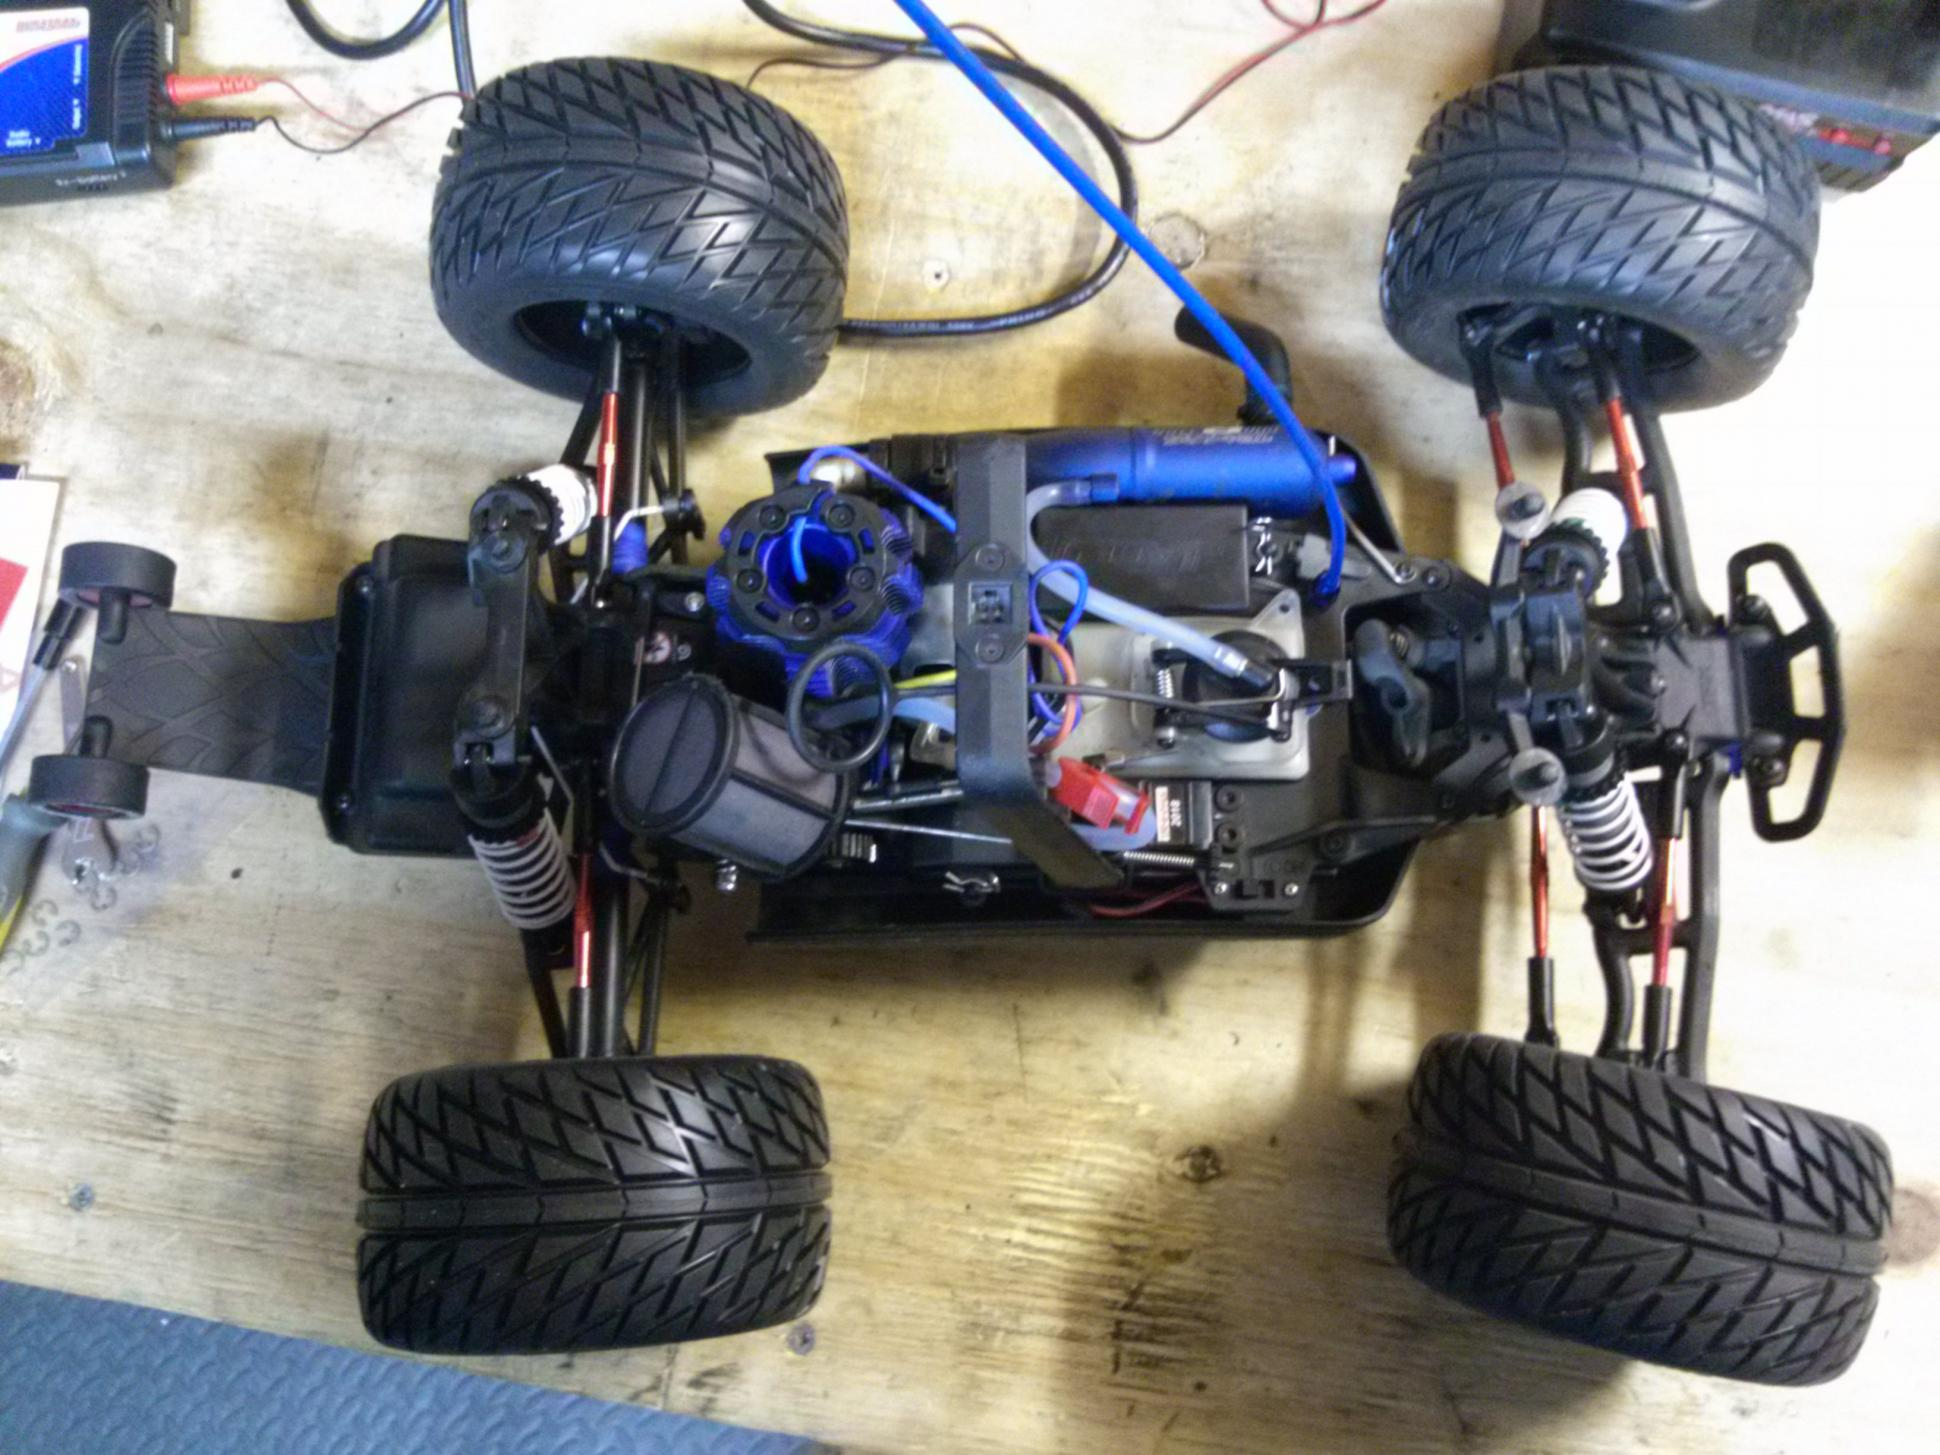 official traxxas jato 3 3 on road thread r c tech forums. Black Bedroom Furniture Sets. Home Design Ideas